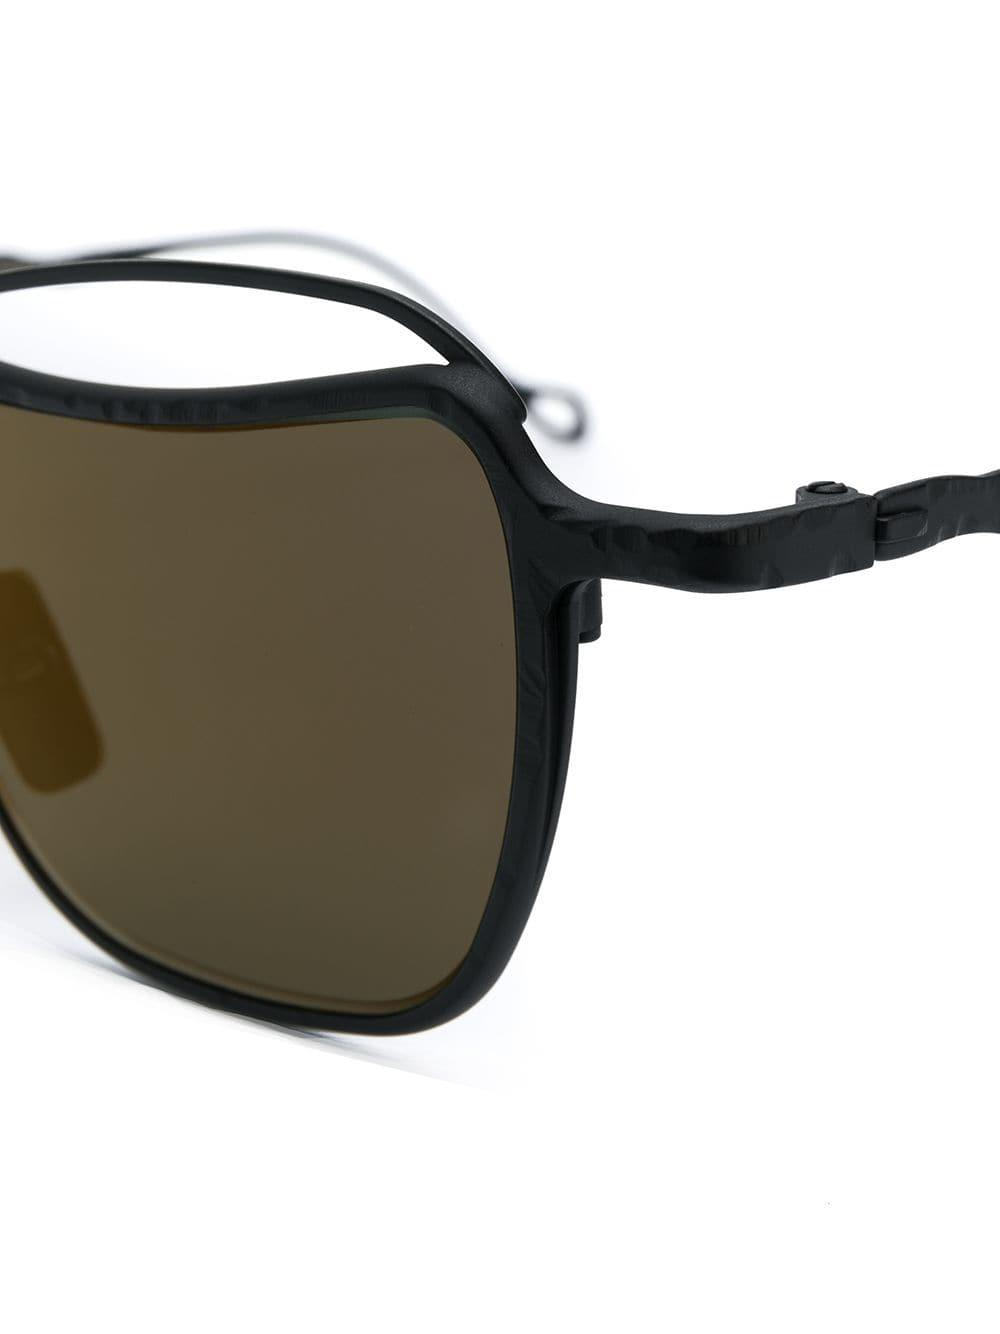 Sunglasses Kuboraum Tinted Lyst Square Black In 14 Save HED92YWI